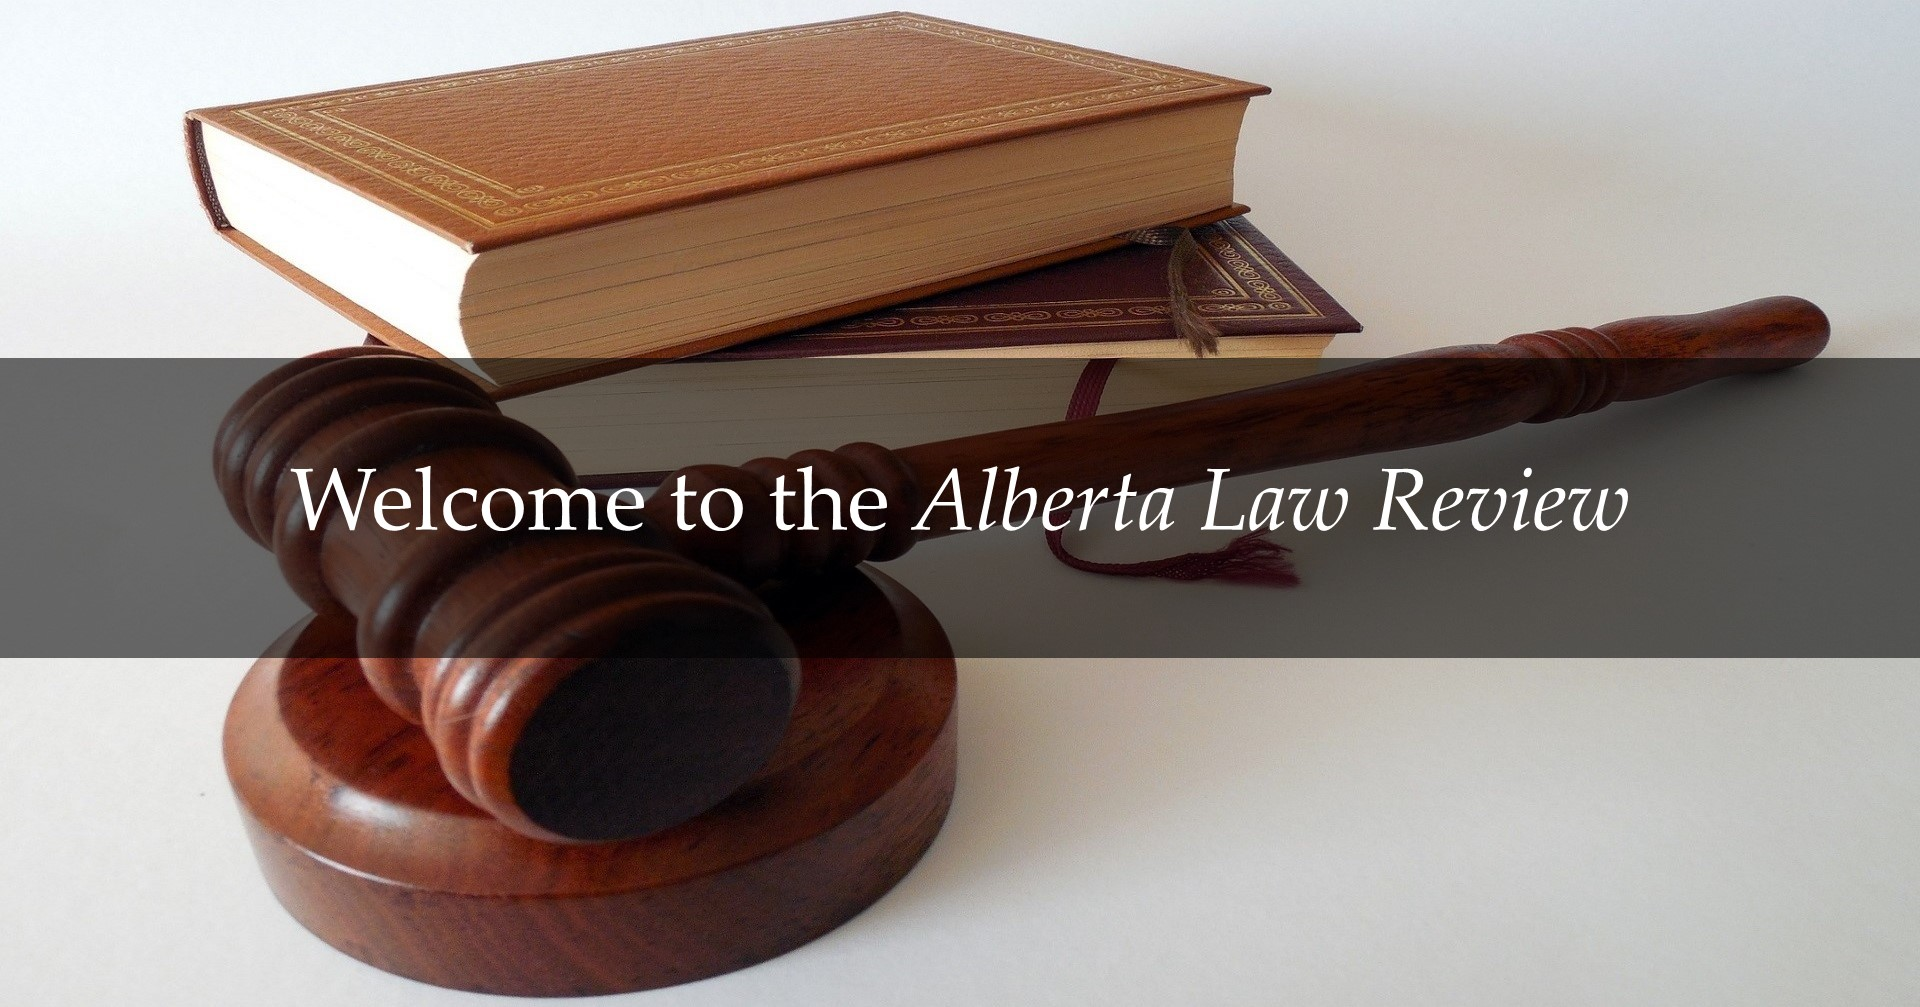 Welcome to the Alberta Law Review